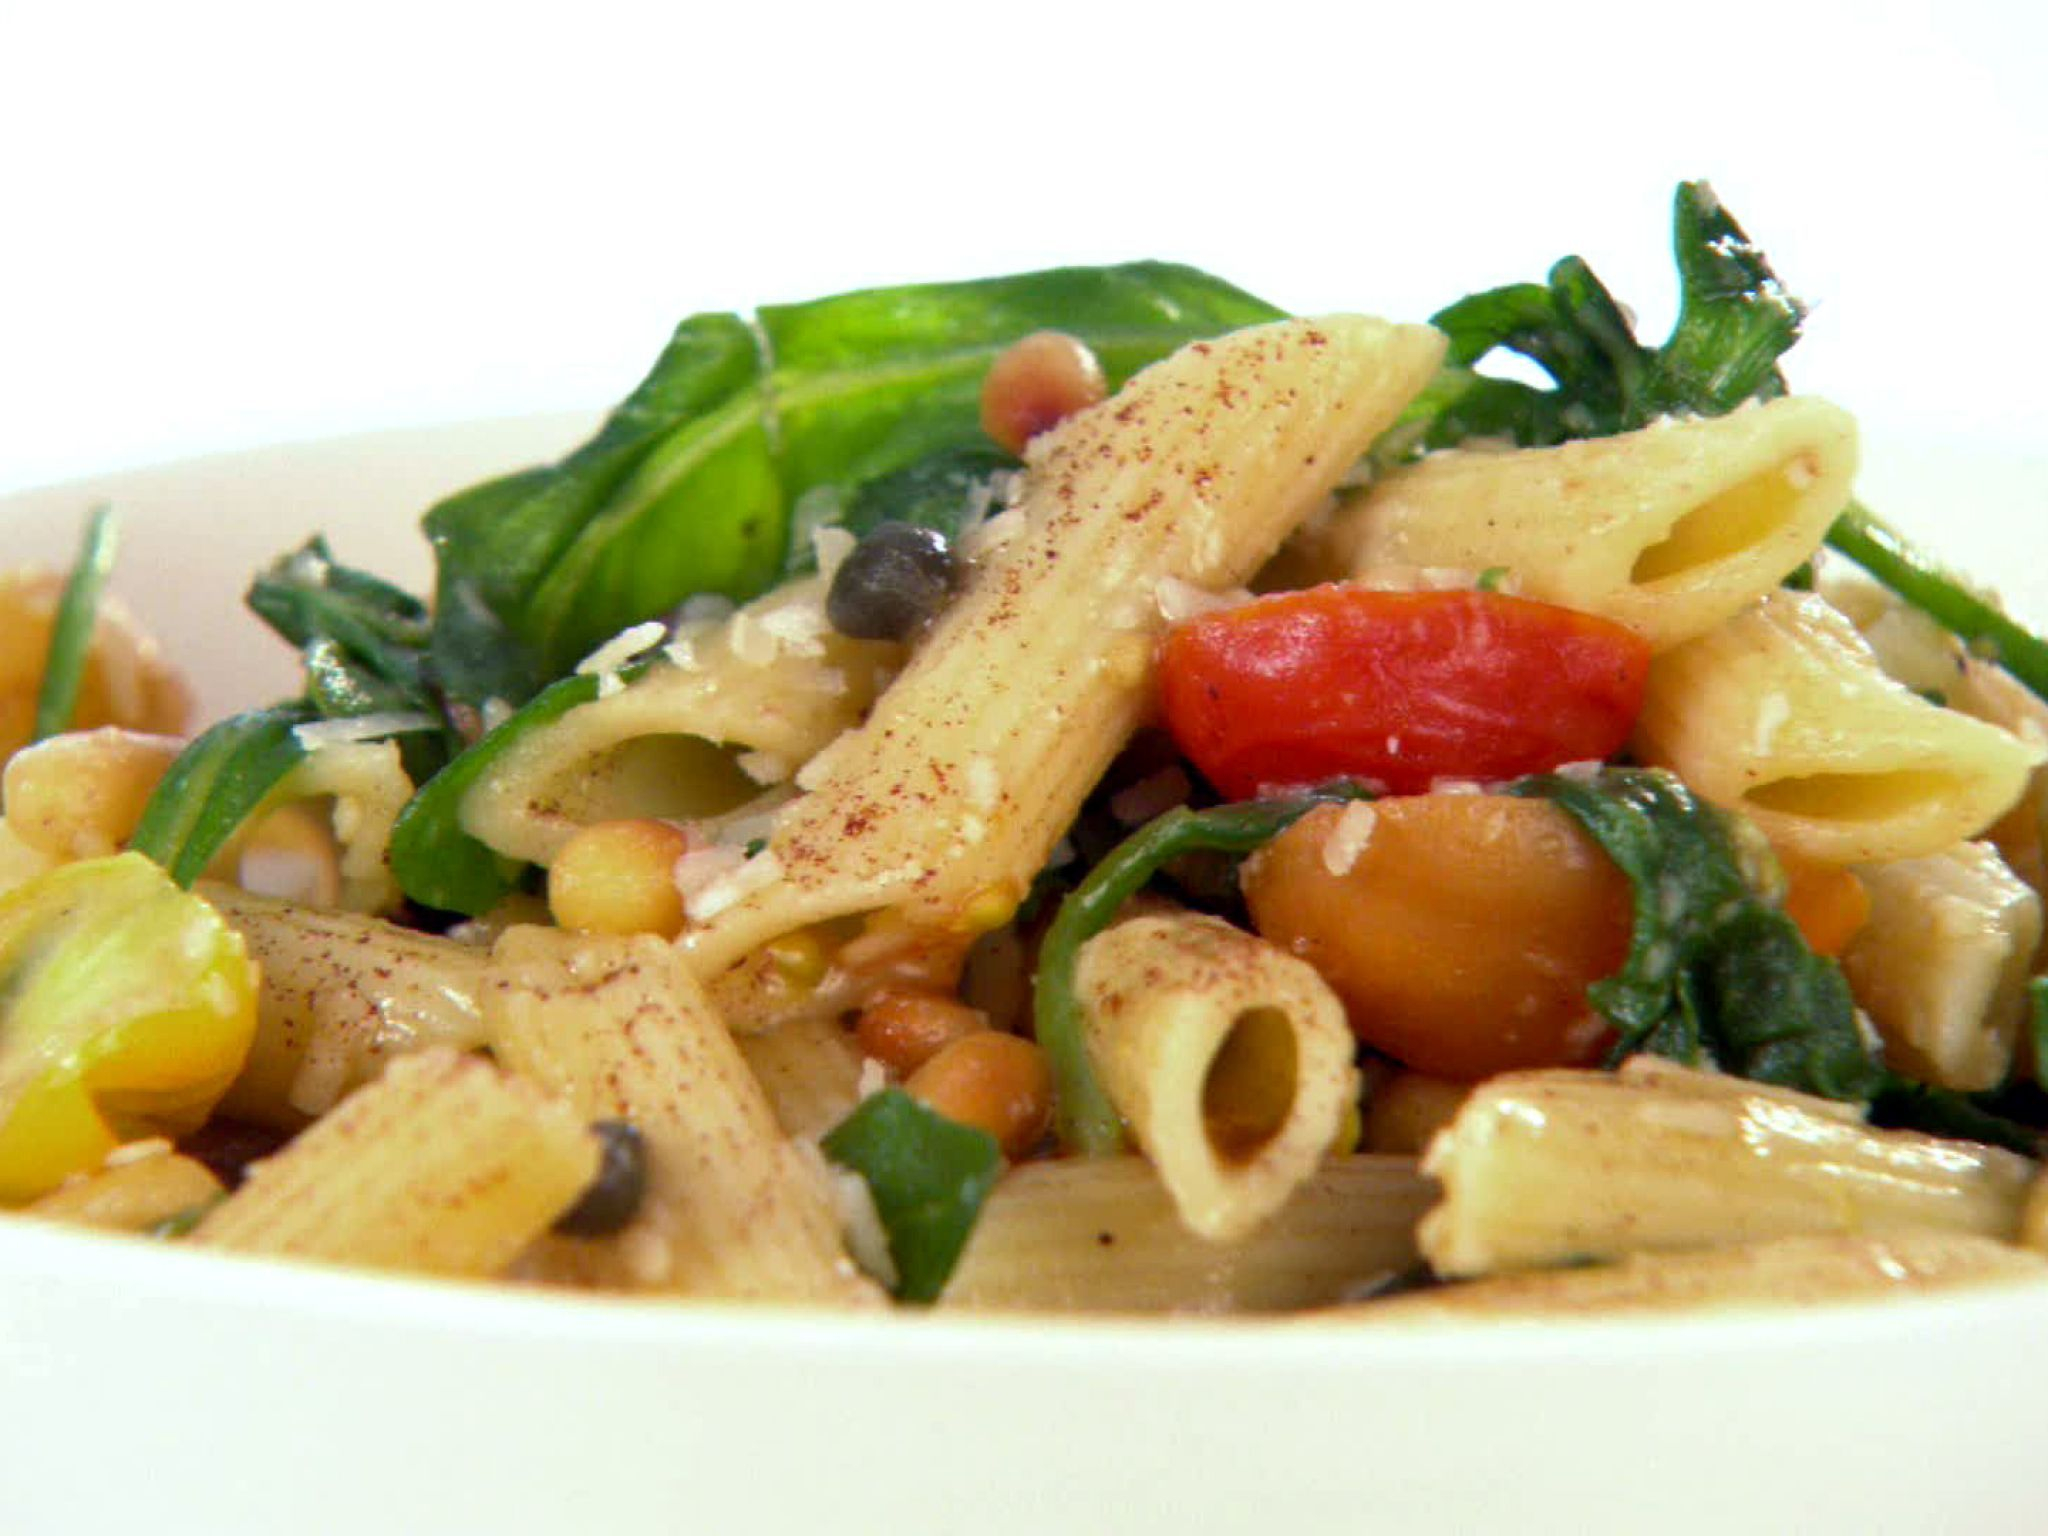 Penne with brown butter arugula and pine nuts recipe nut penne with brown butter arugula and pine nuts pine nut recipespasta recipesgiada recipeschicken recipesrecipe pastahealthy recipesfood network forumfinder Images